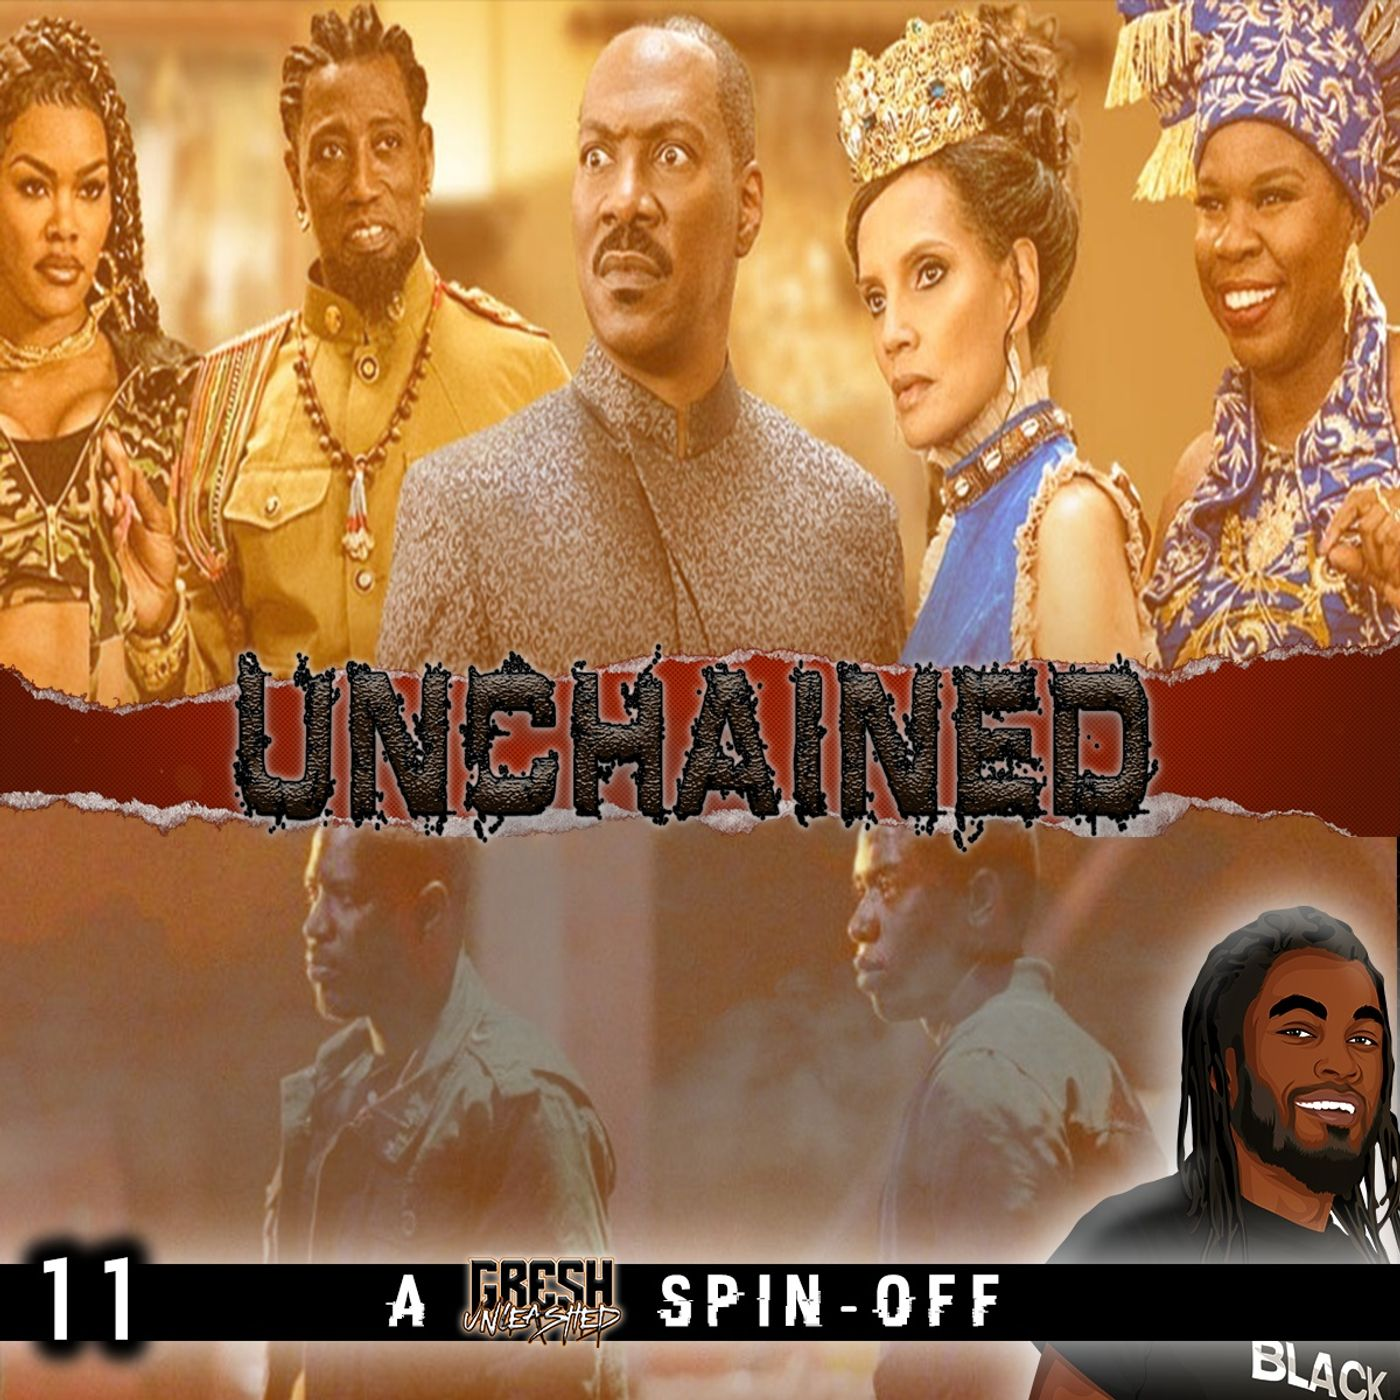 Coming 2 America was OK, but another one SHOULD NOT be made!   Unchained 011